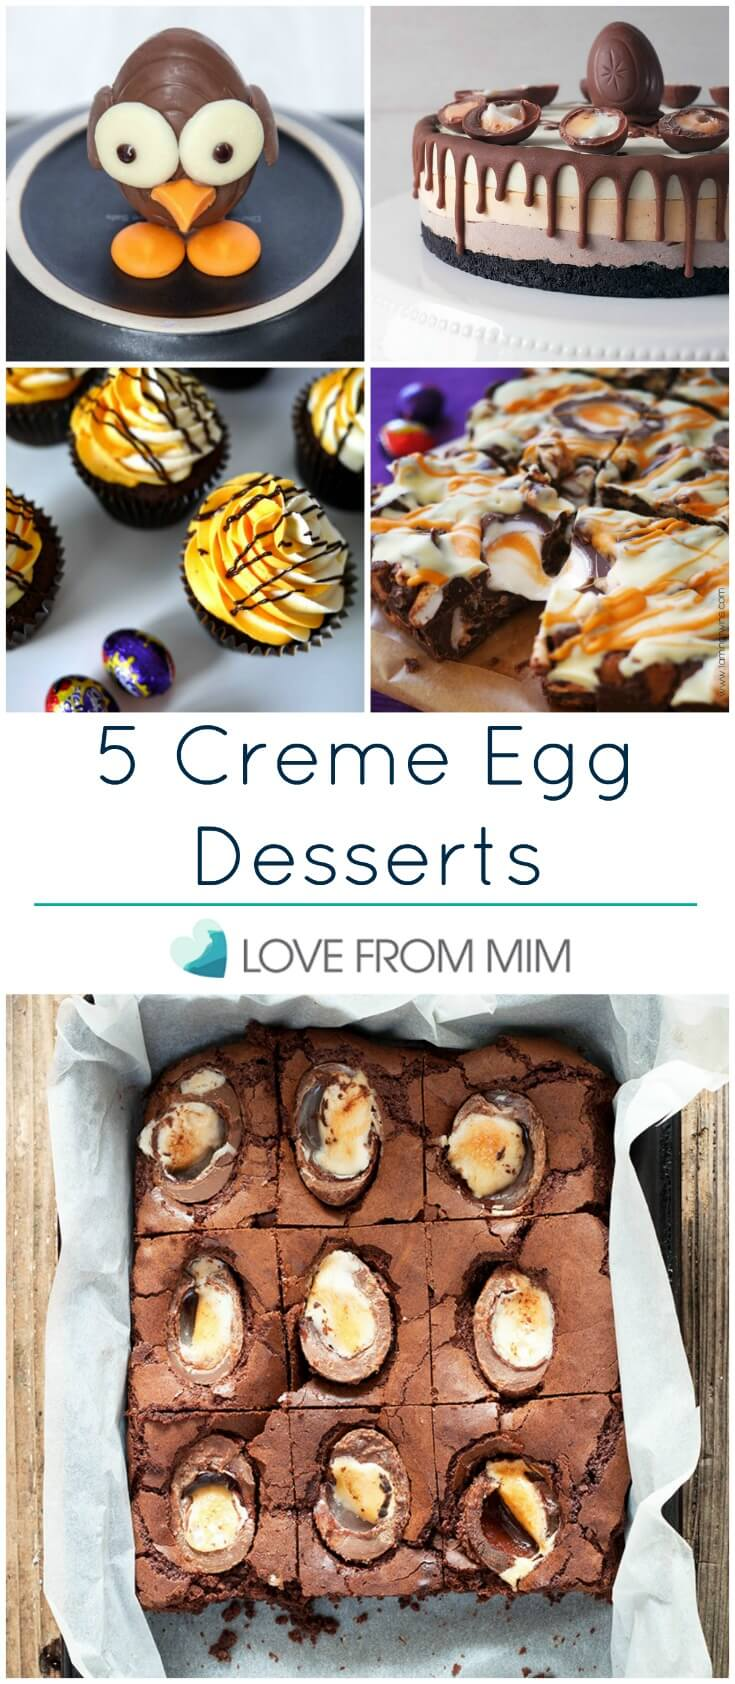 5 Creme Egg Desserts! Love from Mim lovefrommim.com Easter Eggs Cadbury Creme Eggs Easter Treats Easter Desserts